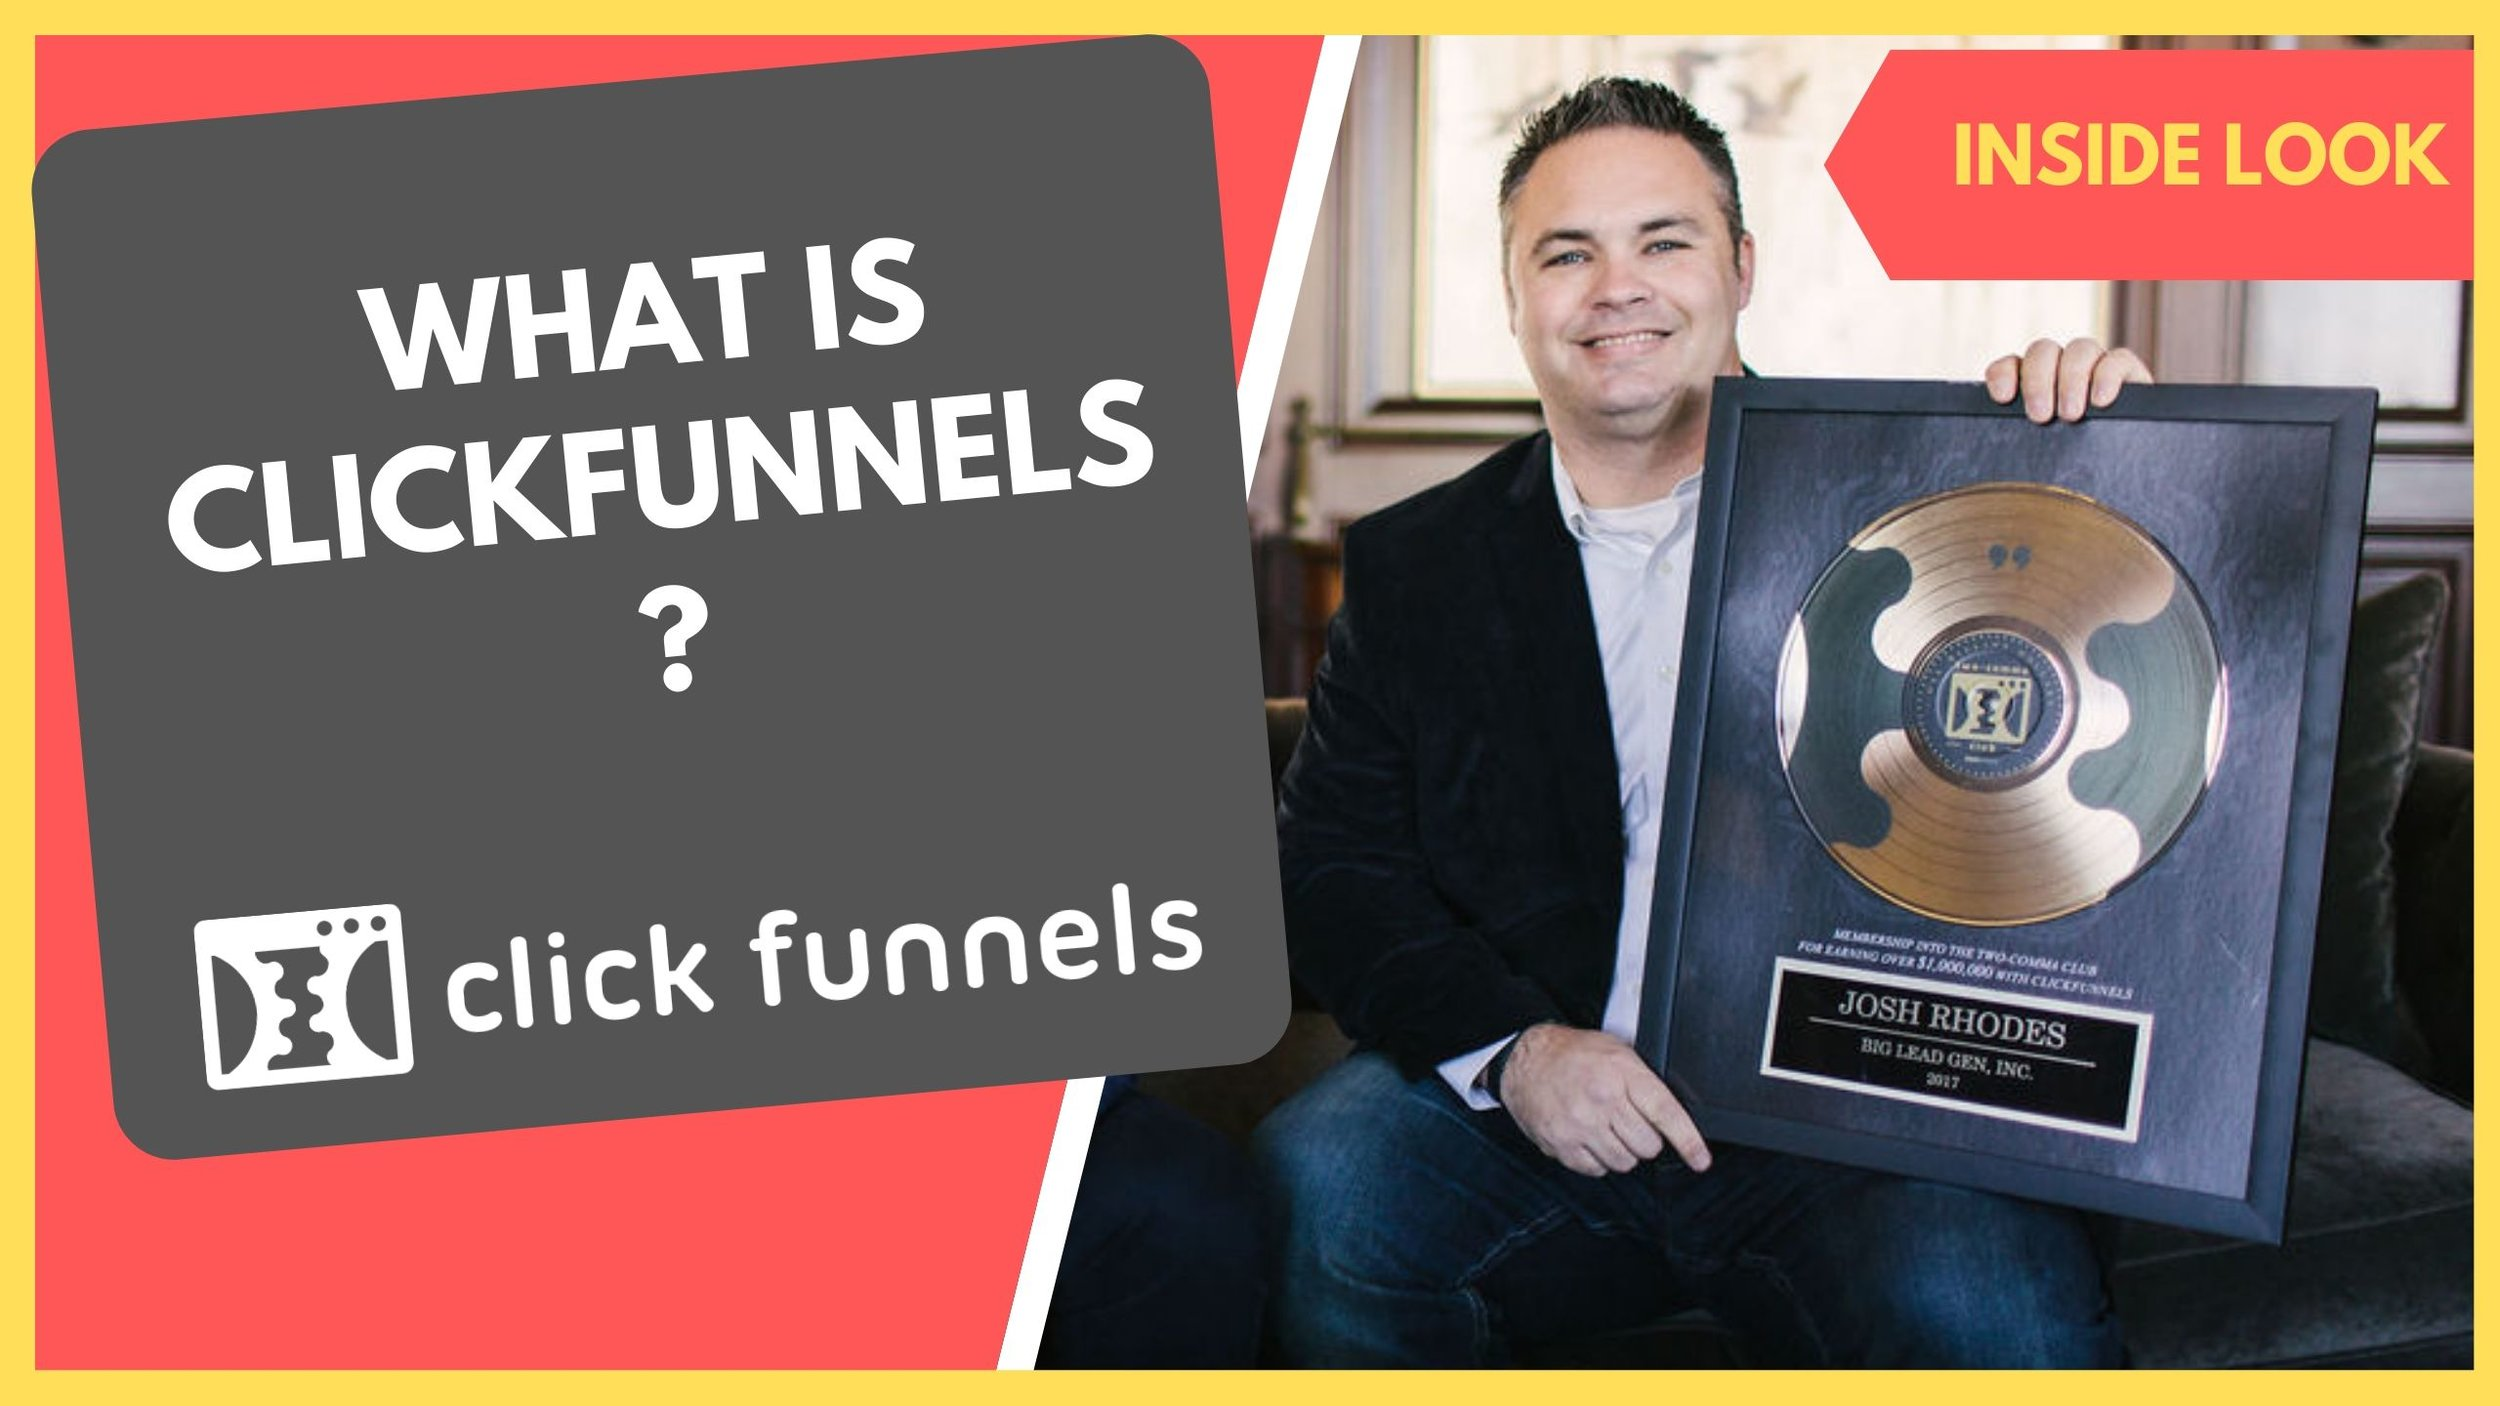 Clickfunnels For Real Estate